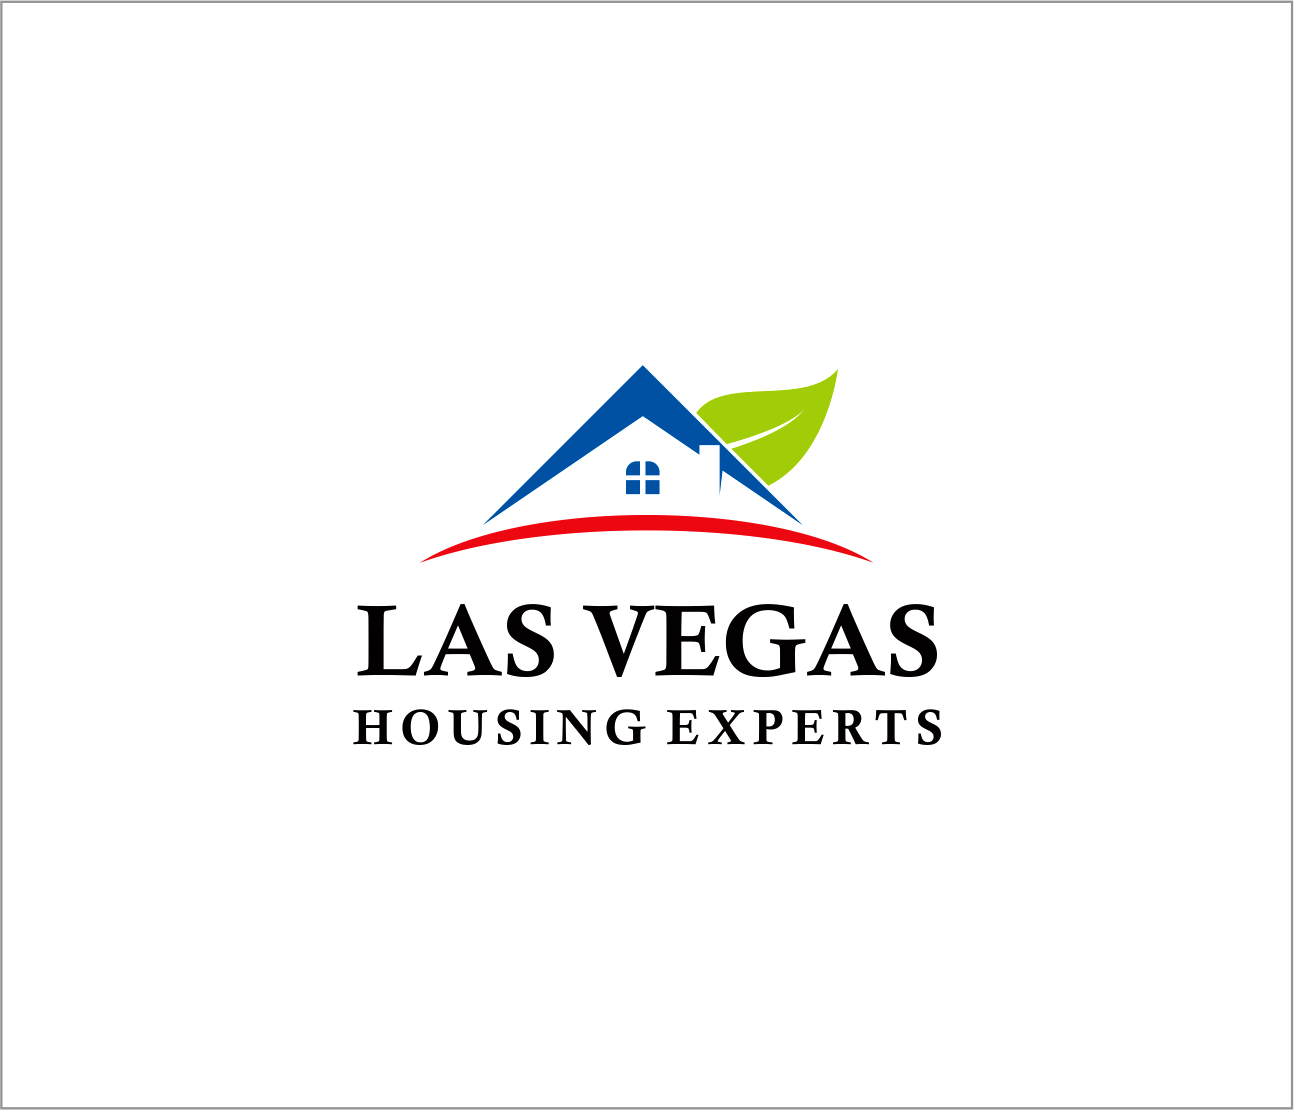 Logo Design by Armada Jamaluddin - Entry No. 120 in the Logo Design Contest Las Vegas Housing Experts Logo Design.